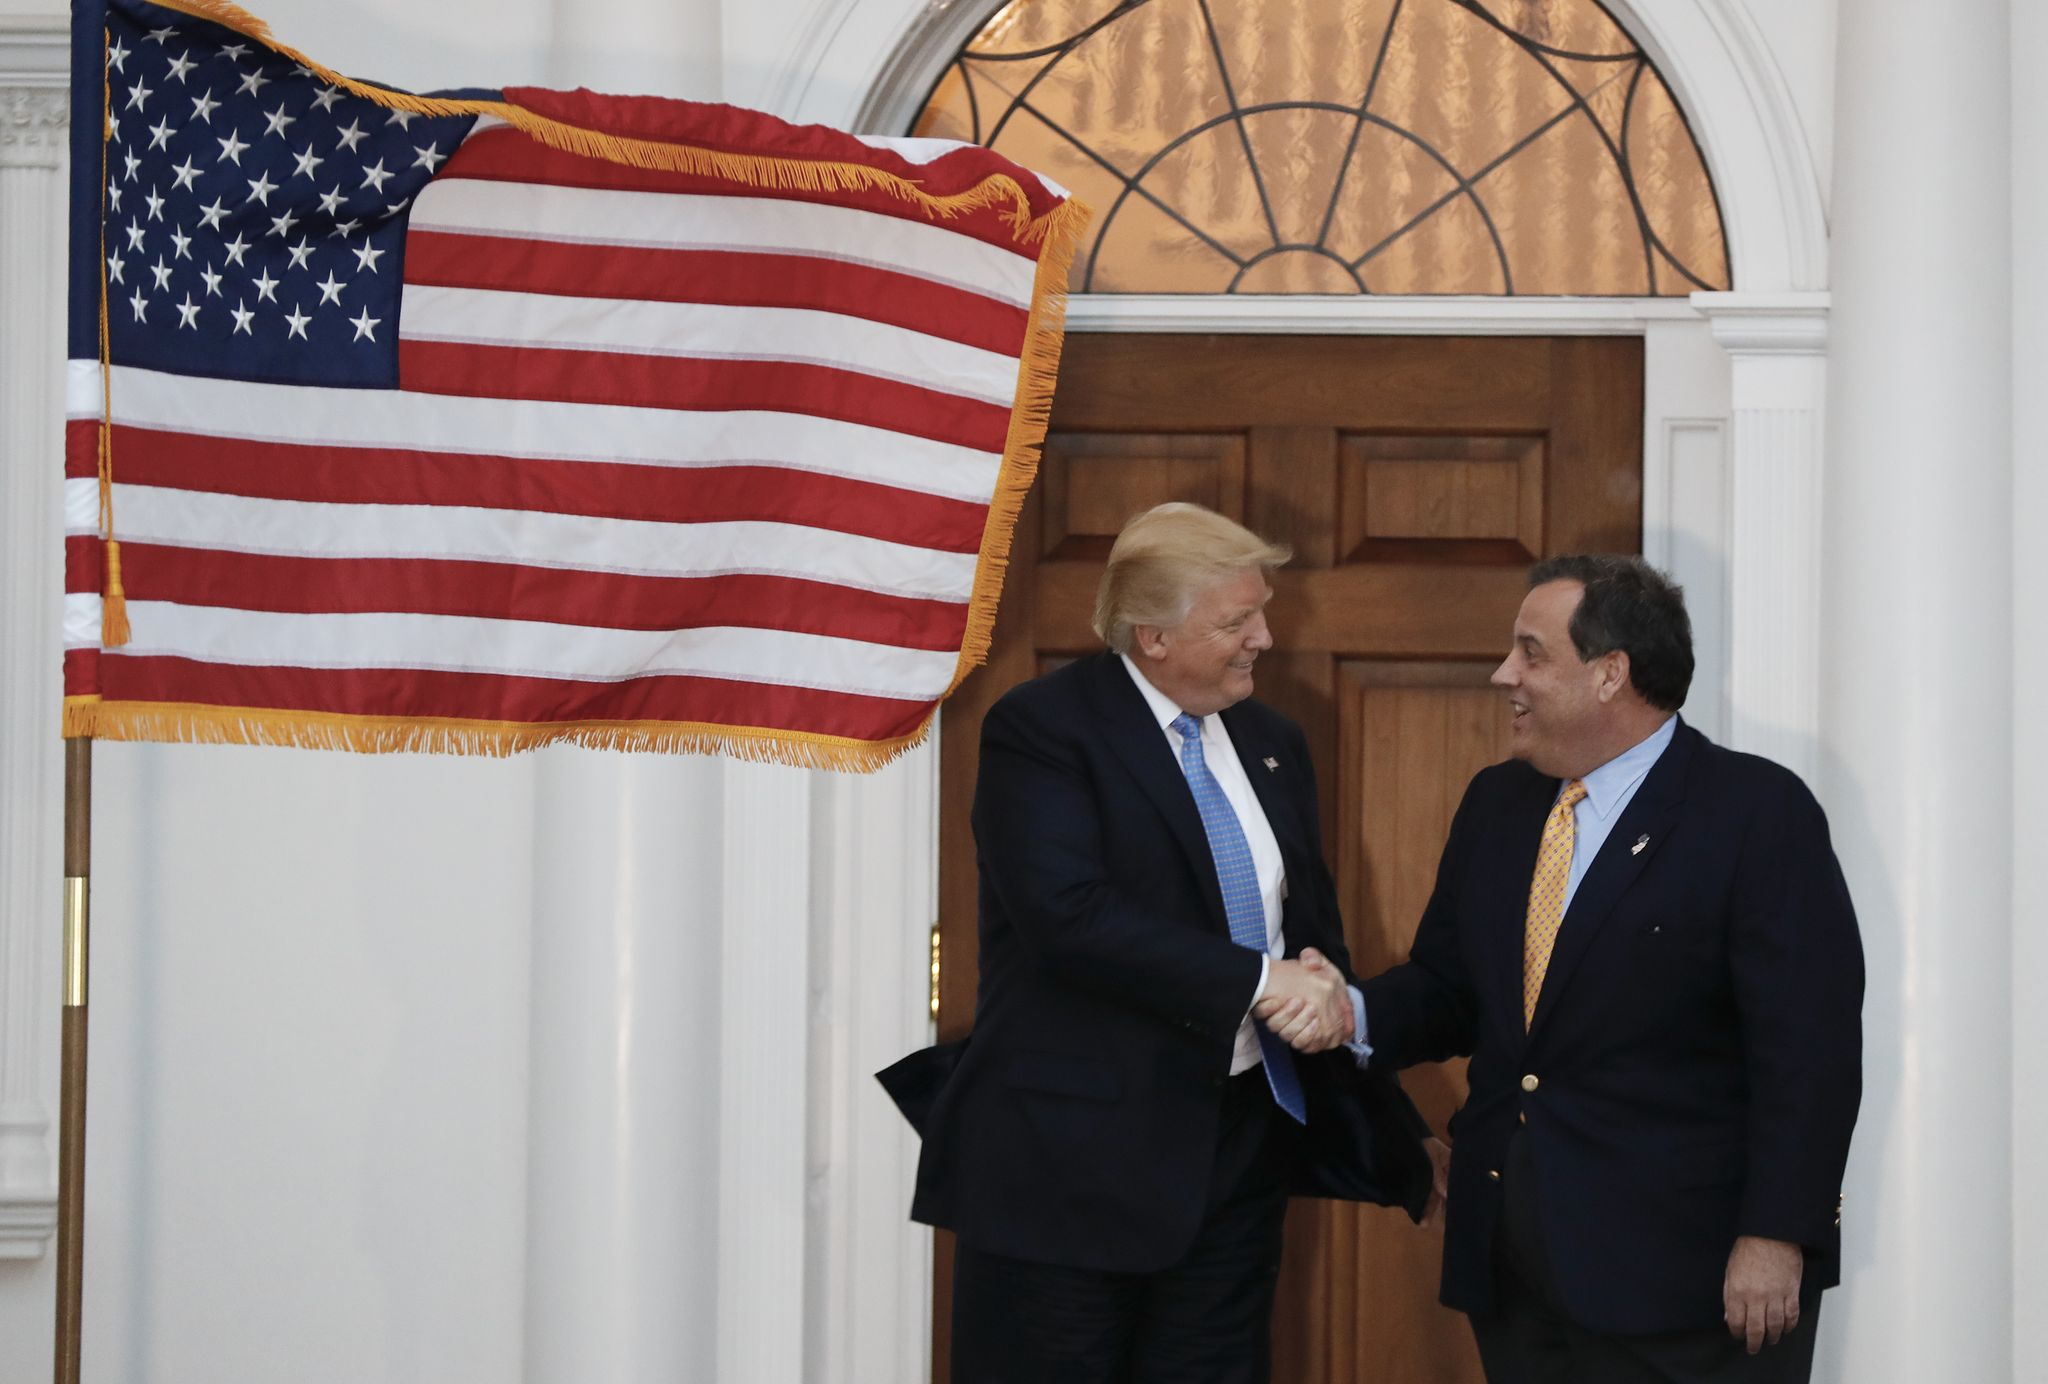 Chris Christie meets with Trump about chief of staff post: Report